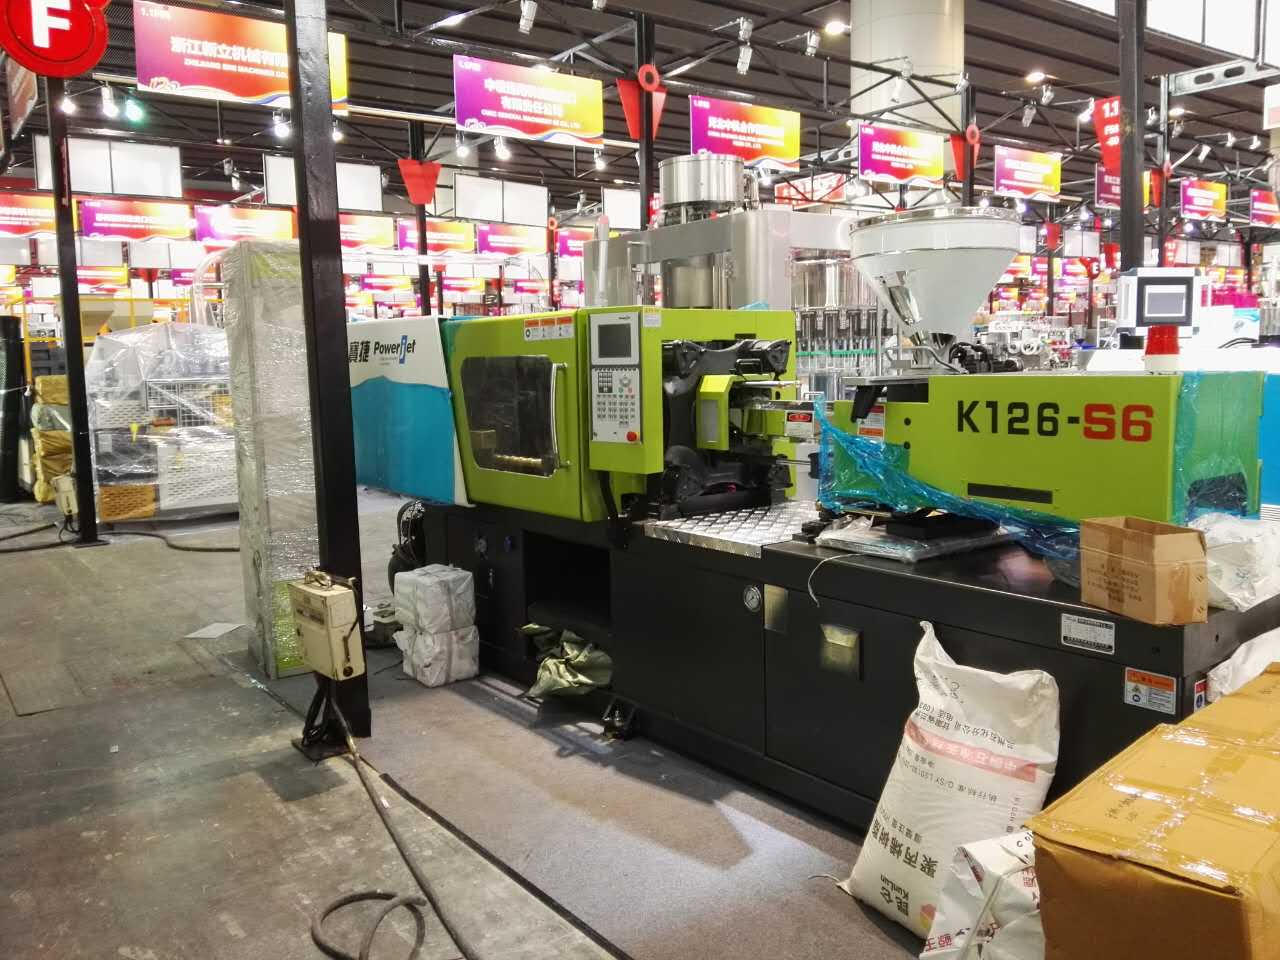 Powerjet thin wall fast food box producing injection molding machine K126-S6